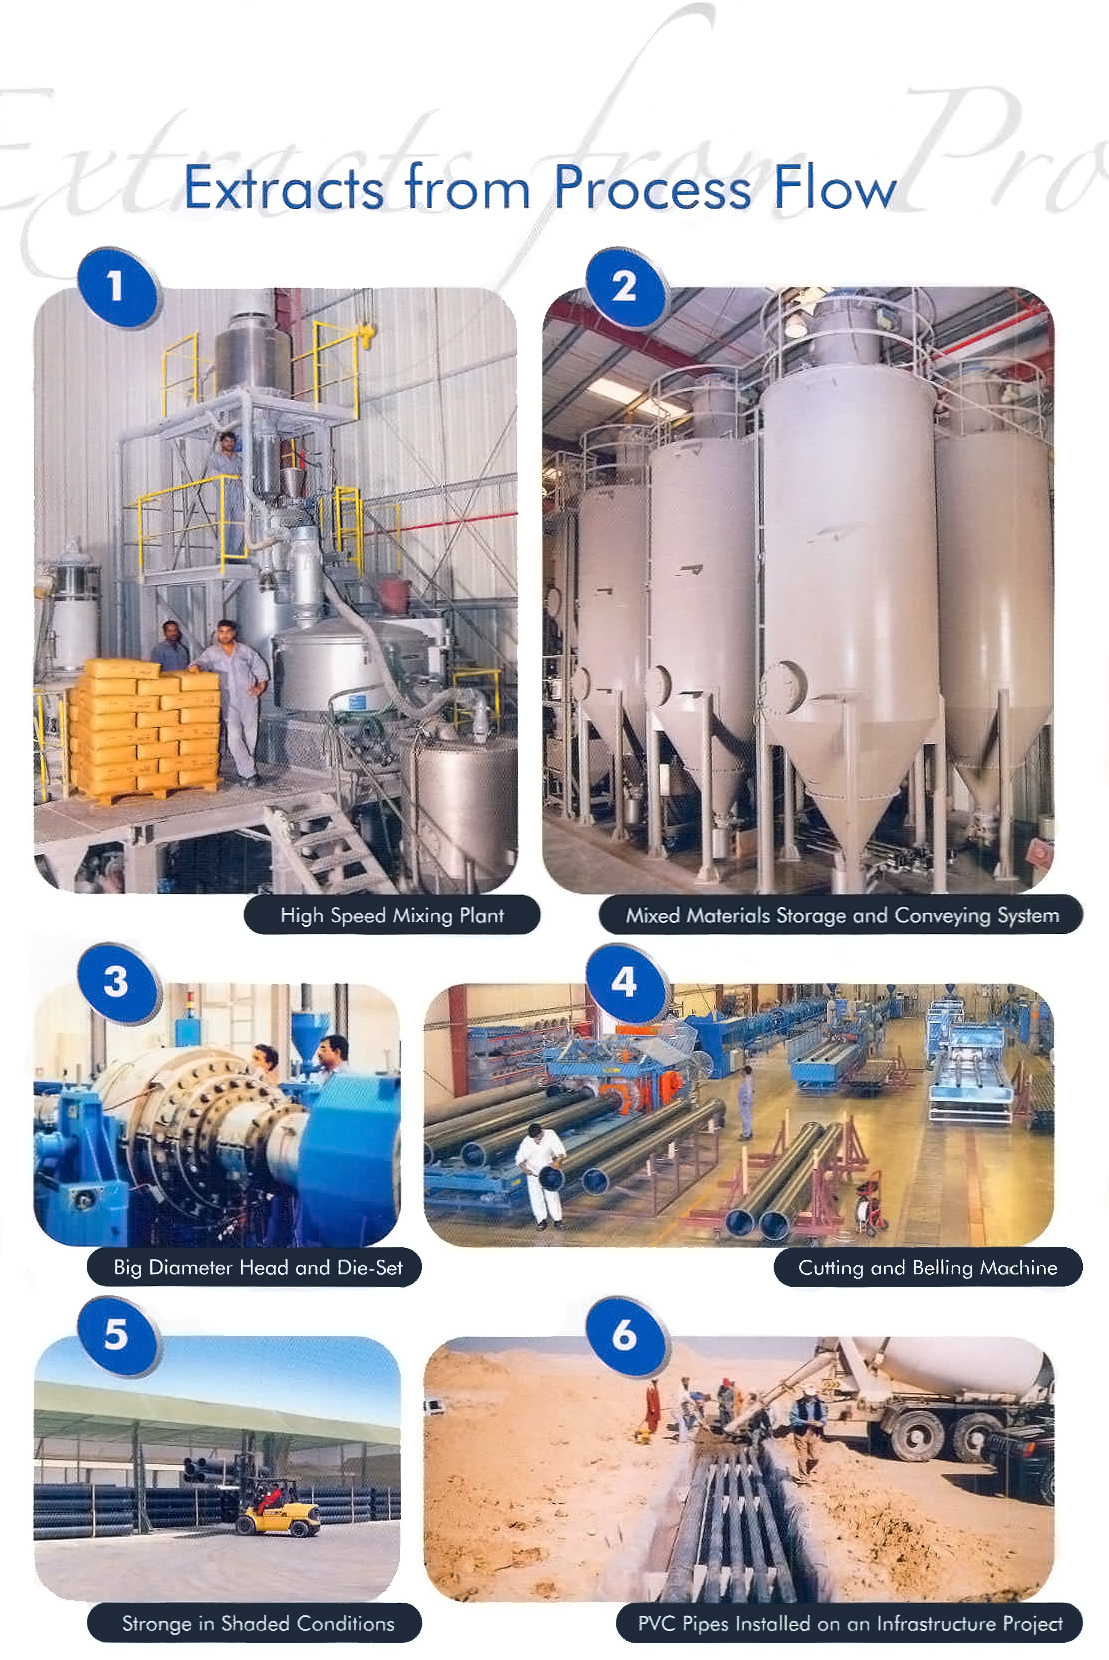 http://www.hedley-international.com/images/epc/process/extracts_process_flow.jpg